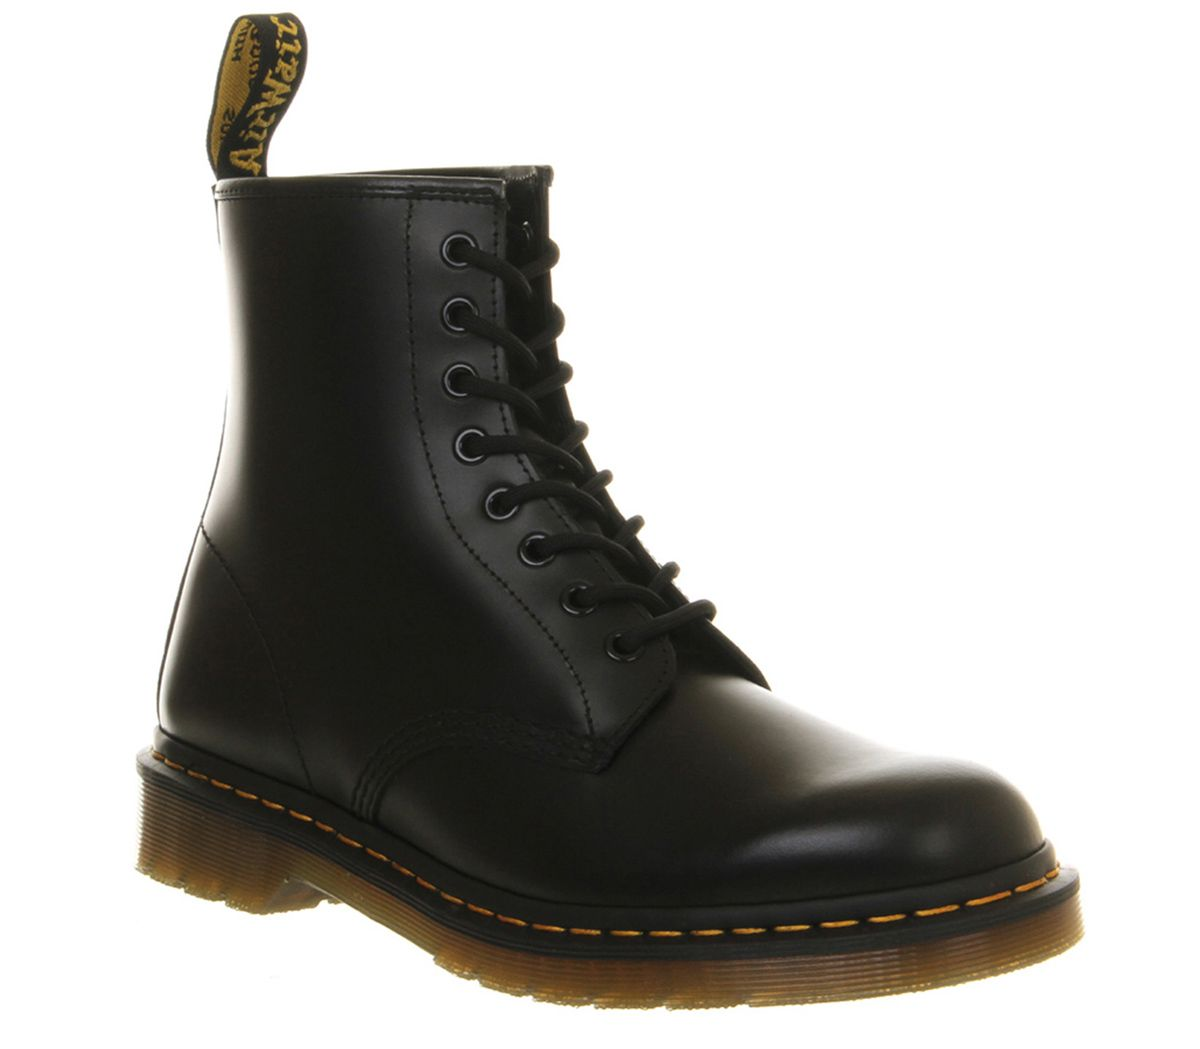 707a7c3ca4283 Dr. Martens 8 Eye Lace Boots Black Leather - Boots